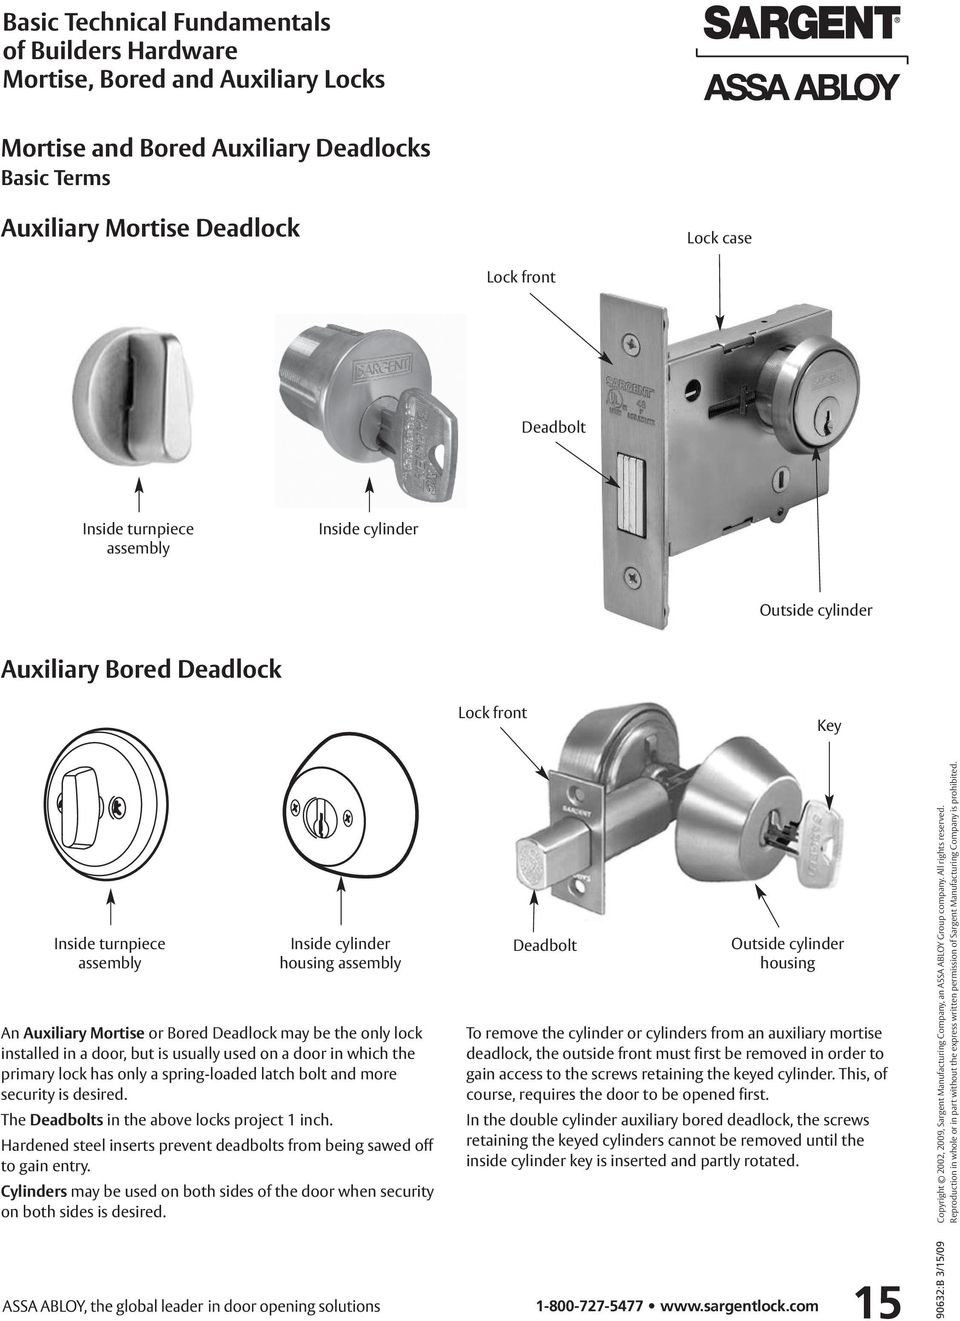 primary lock has only a spring-loaded latch bolt and more security is desired. The Deadbolts in the above locks project 1 inch.